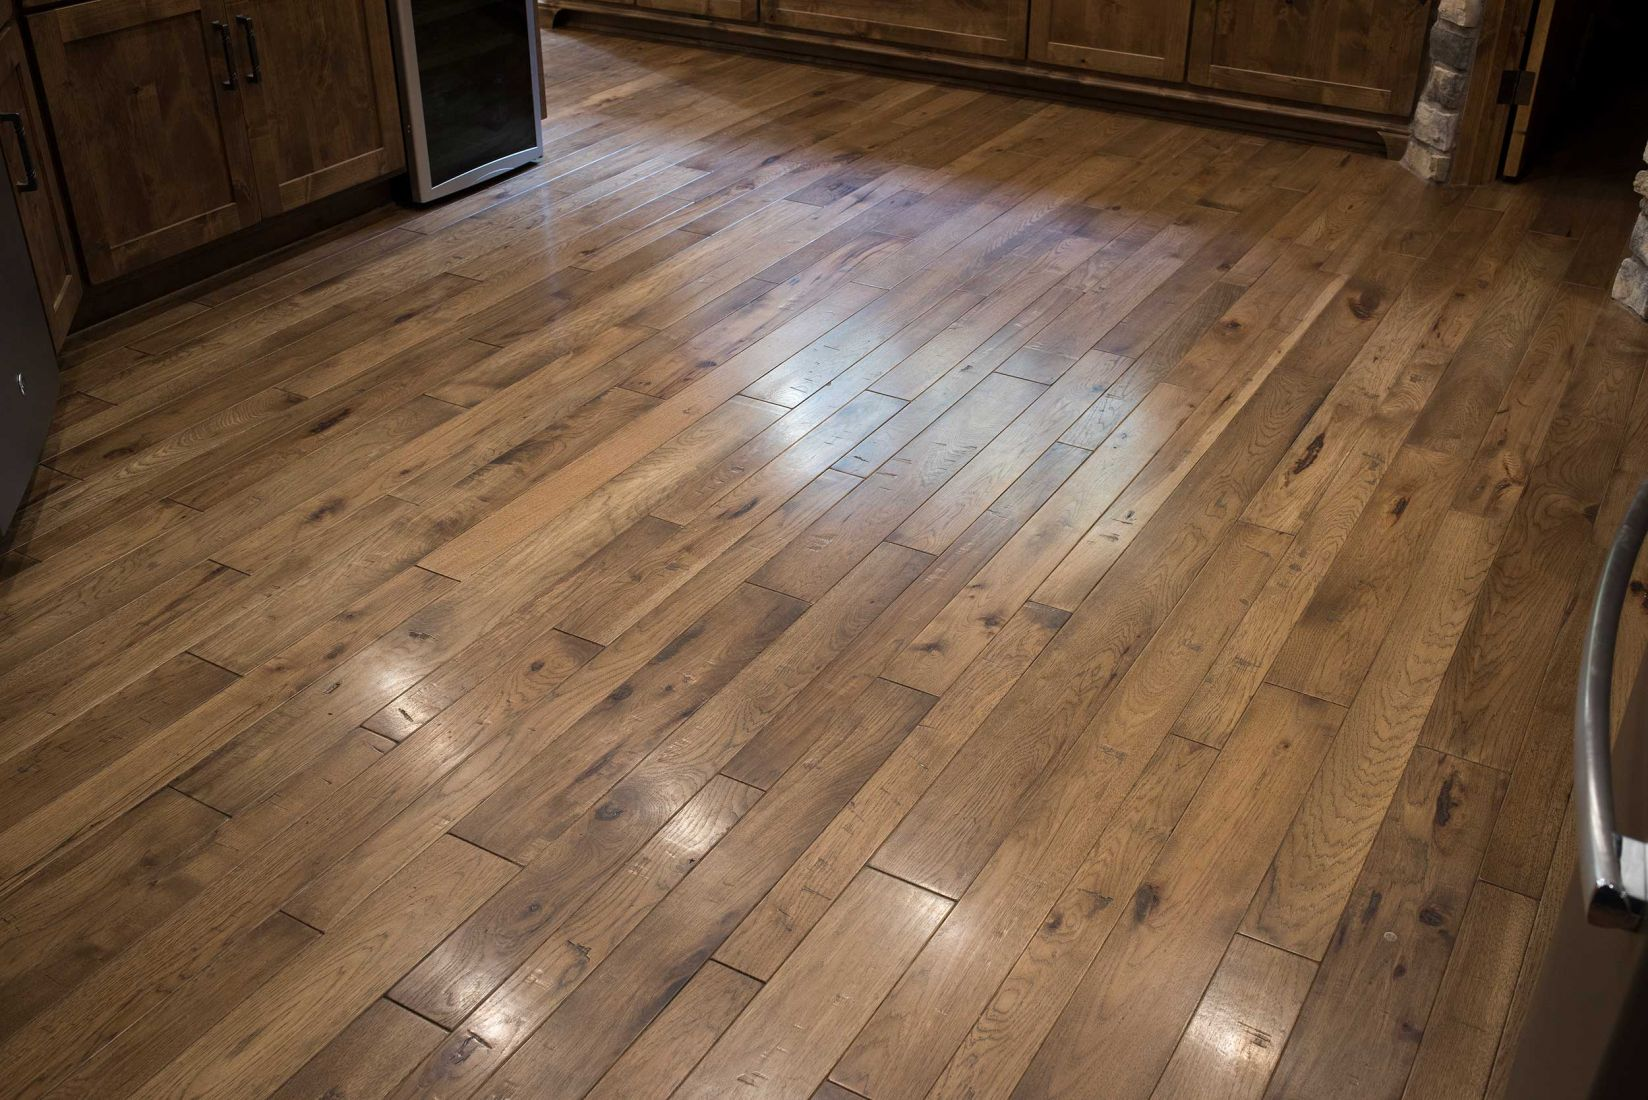 Locally made Hickory Wood Flooring with Cappuccino stain